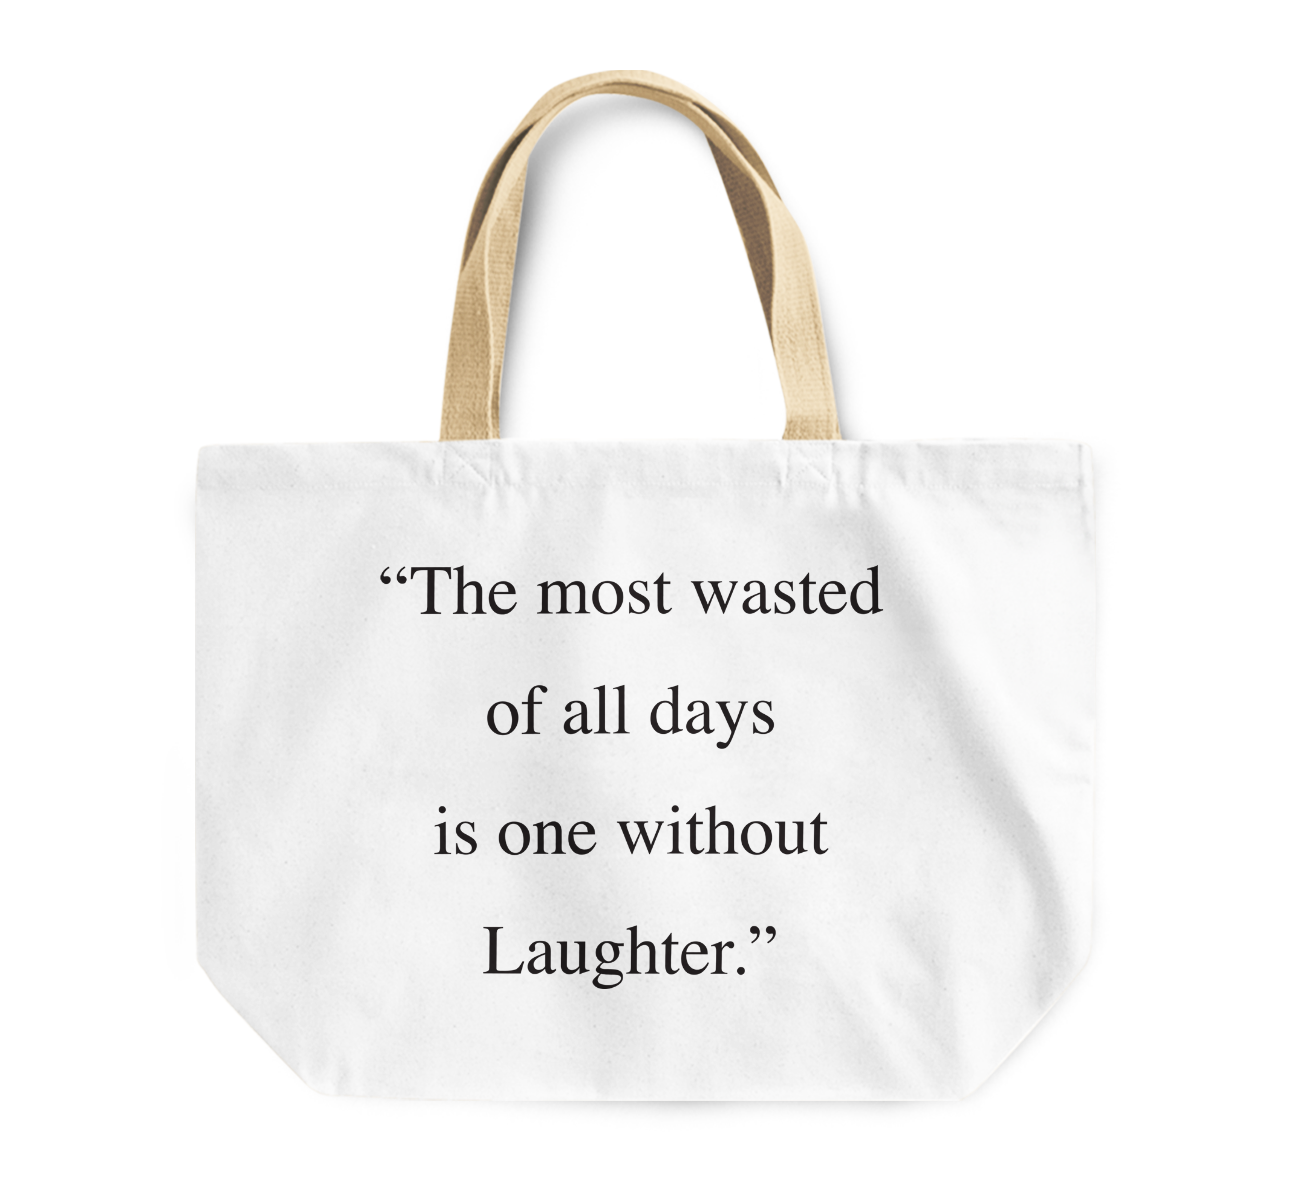 Tote Bag The Most Wasted Of All Days Without Laughter Quote Reusable Shopping Bag By Loud Universe